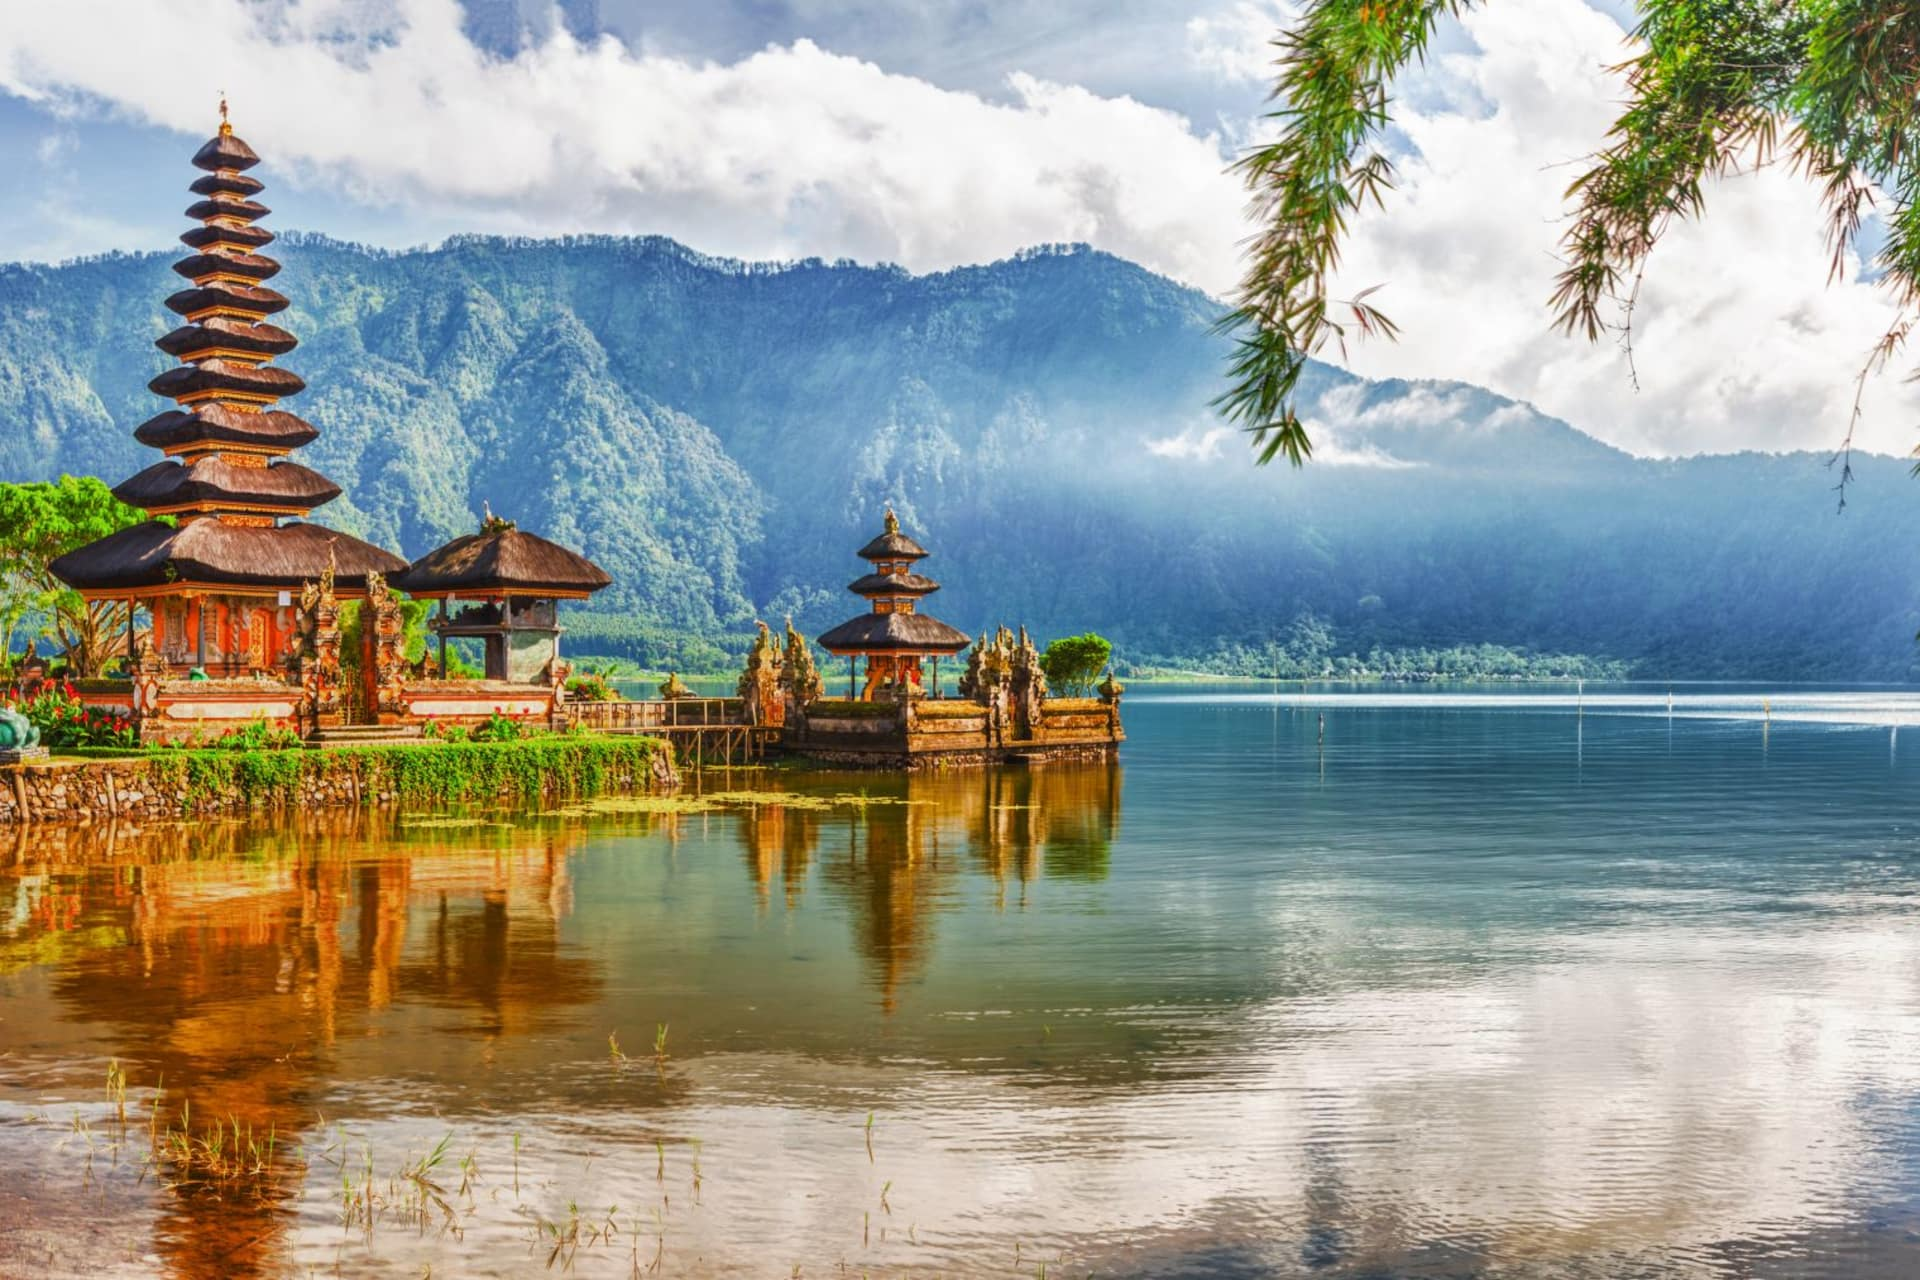 Bali Ulun Danu temple on lake Beratan